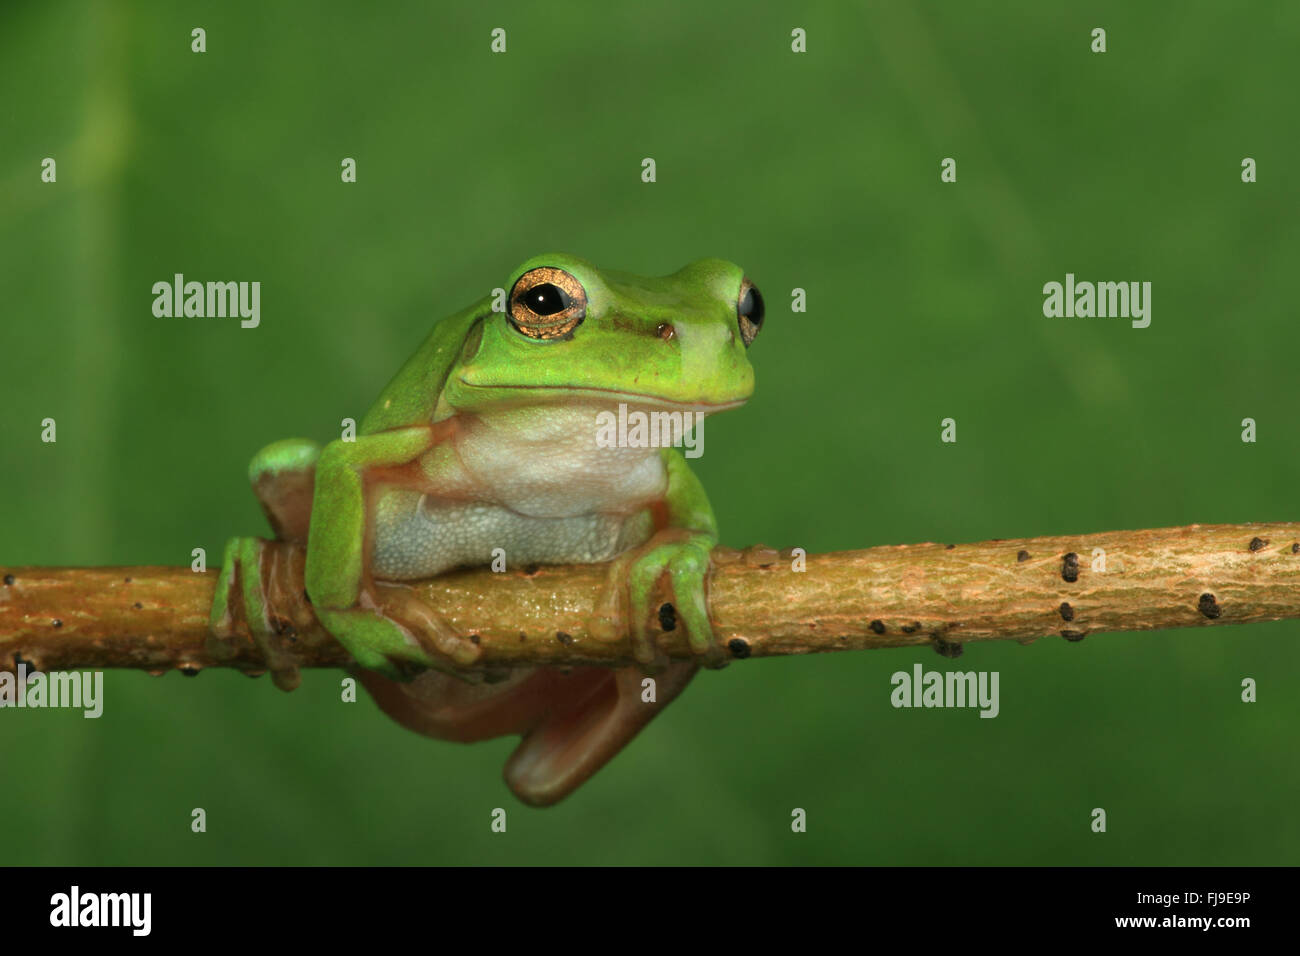 An Australian Green Tree Frog balanced on a horizontal vine with a green background - Stock Image